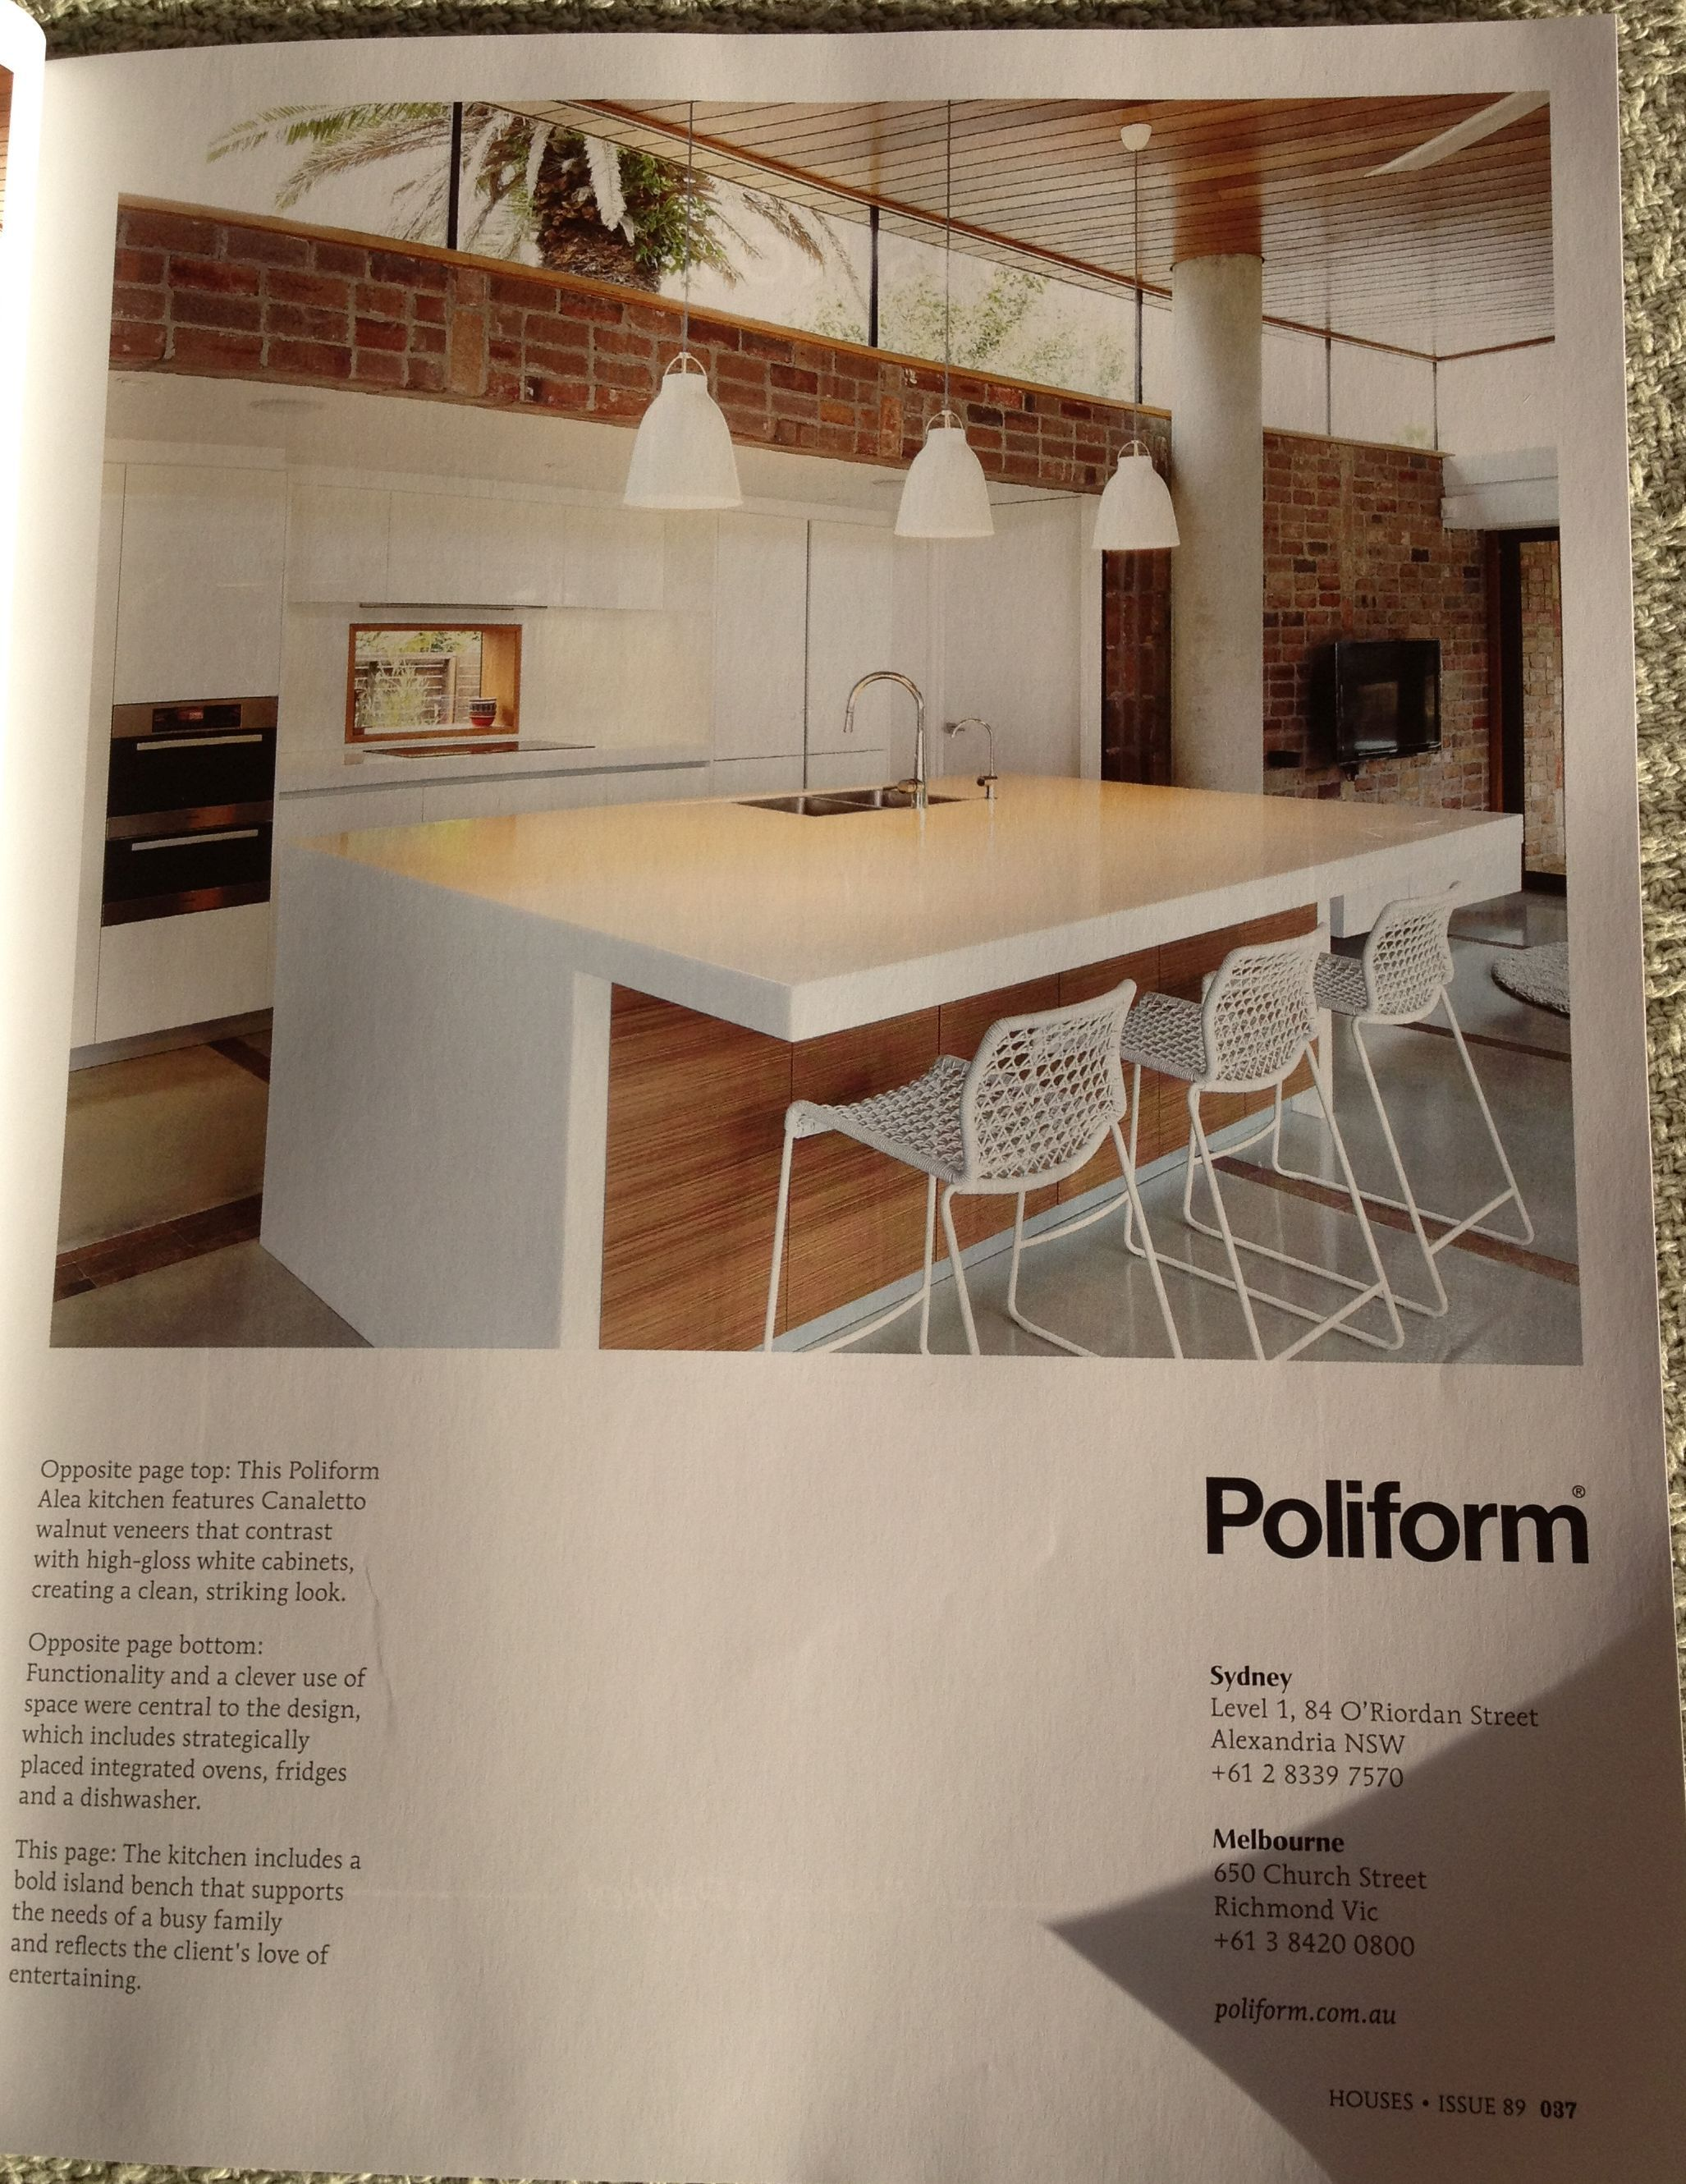 Poliform Kitchen Not At All Keen On Sink Placed In Island